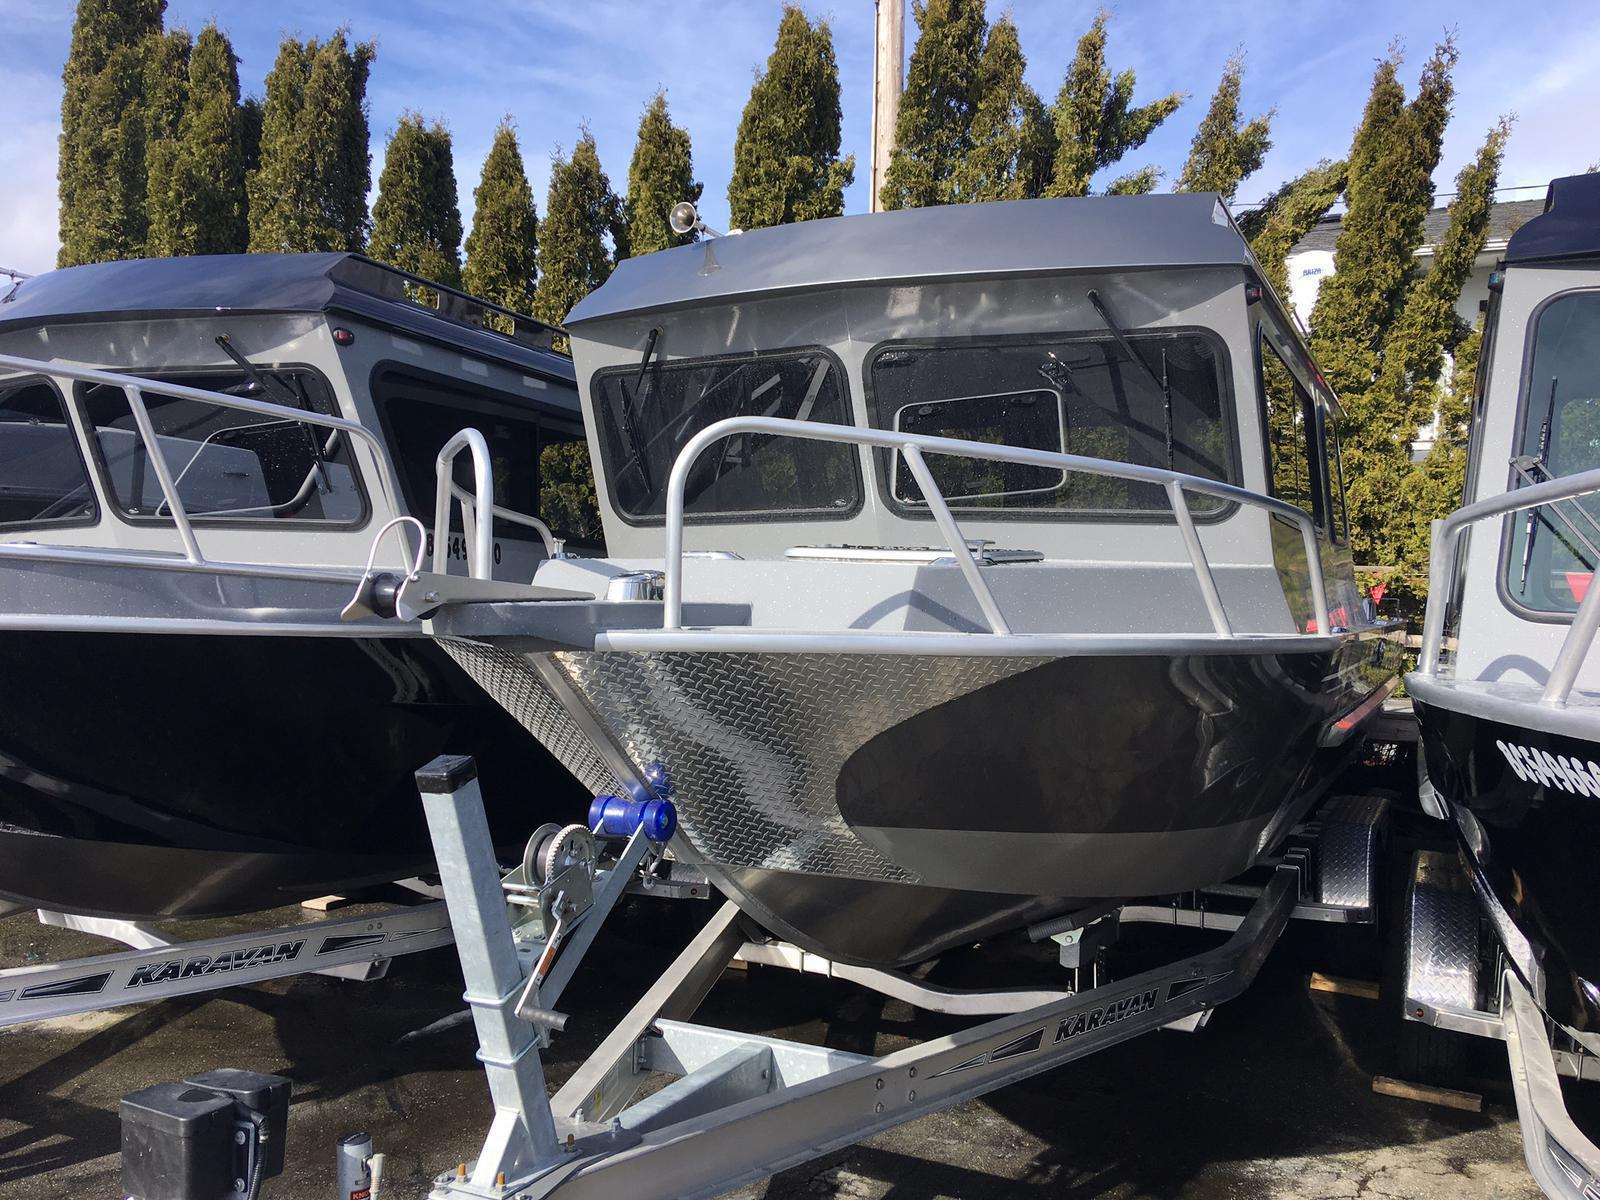 2017 RH Aluminum Boats boat for sale, model of the boat is 22 Sea Hawk Pro Cuddy & Image # 1 of 8